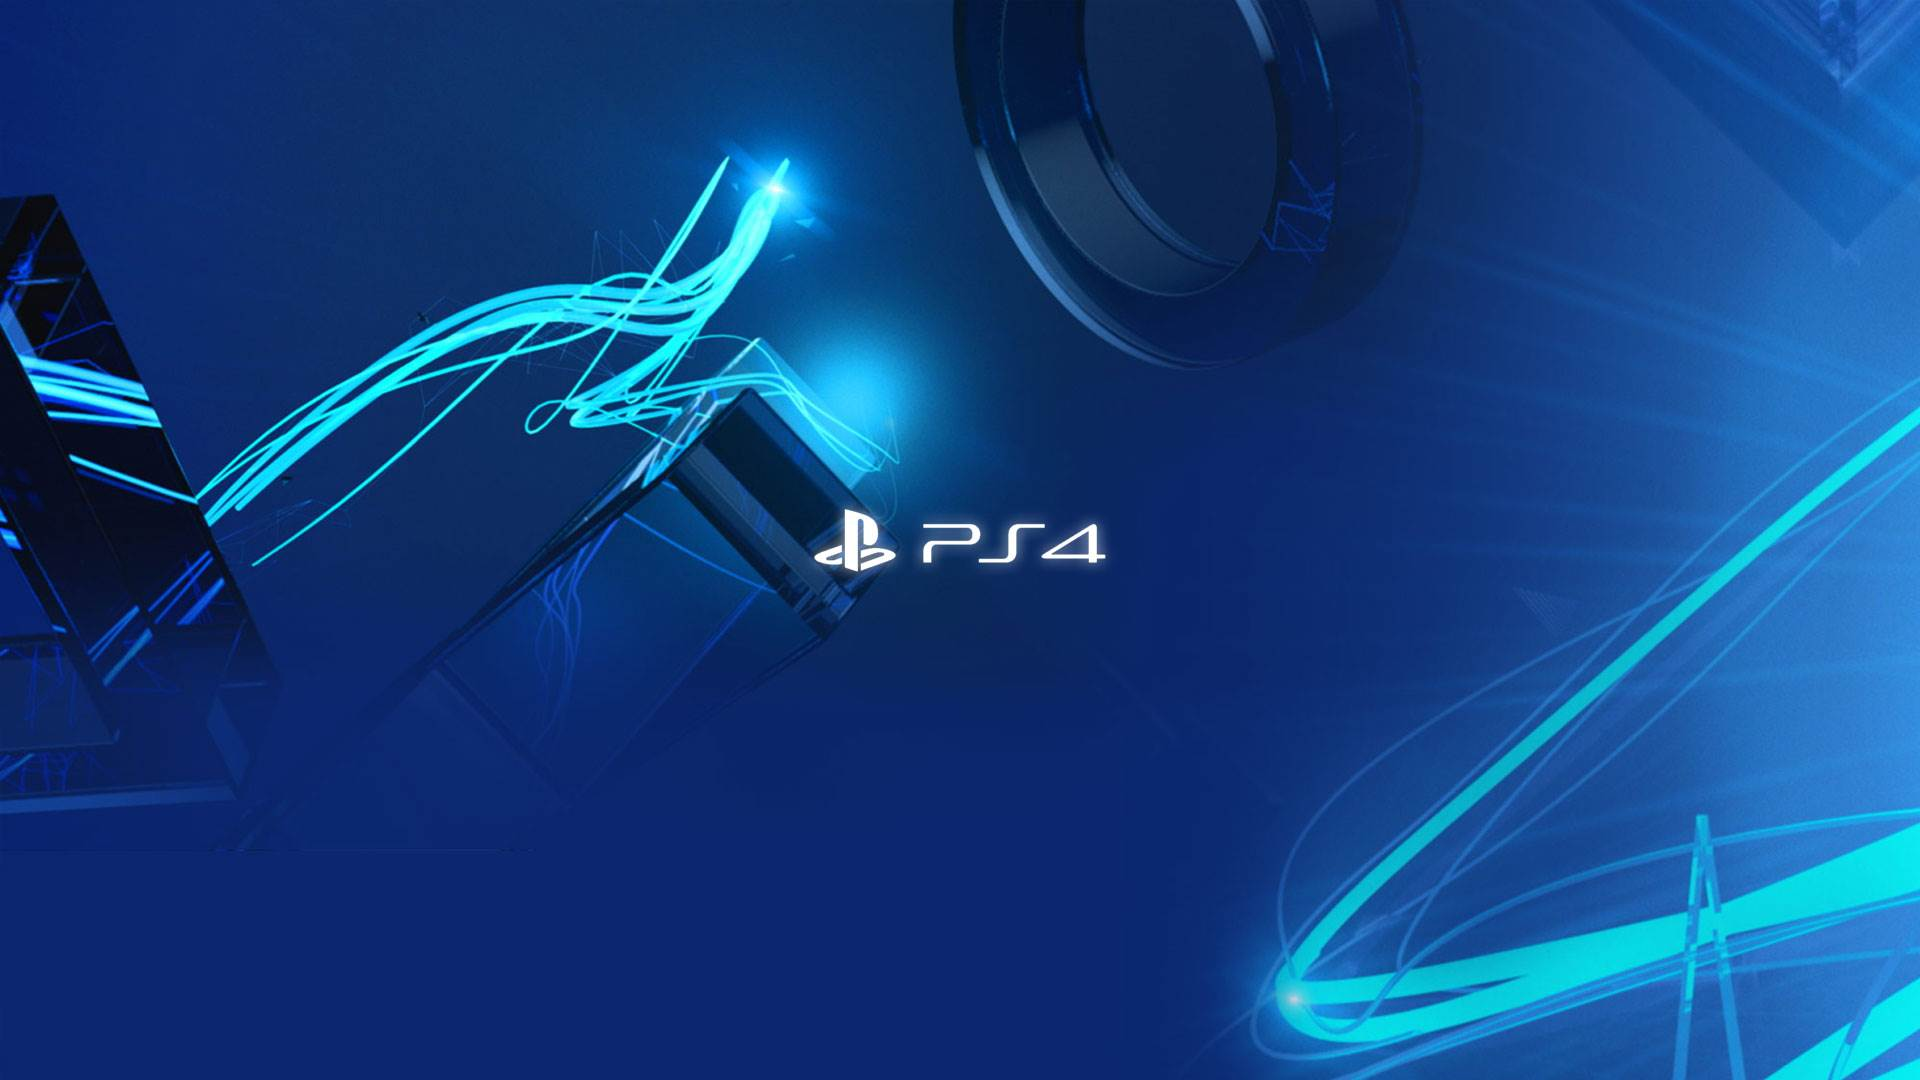 Download Ps4 Live Wallpaper Gallery